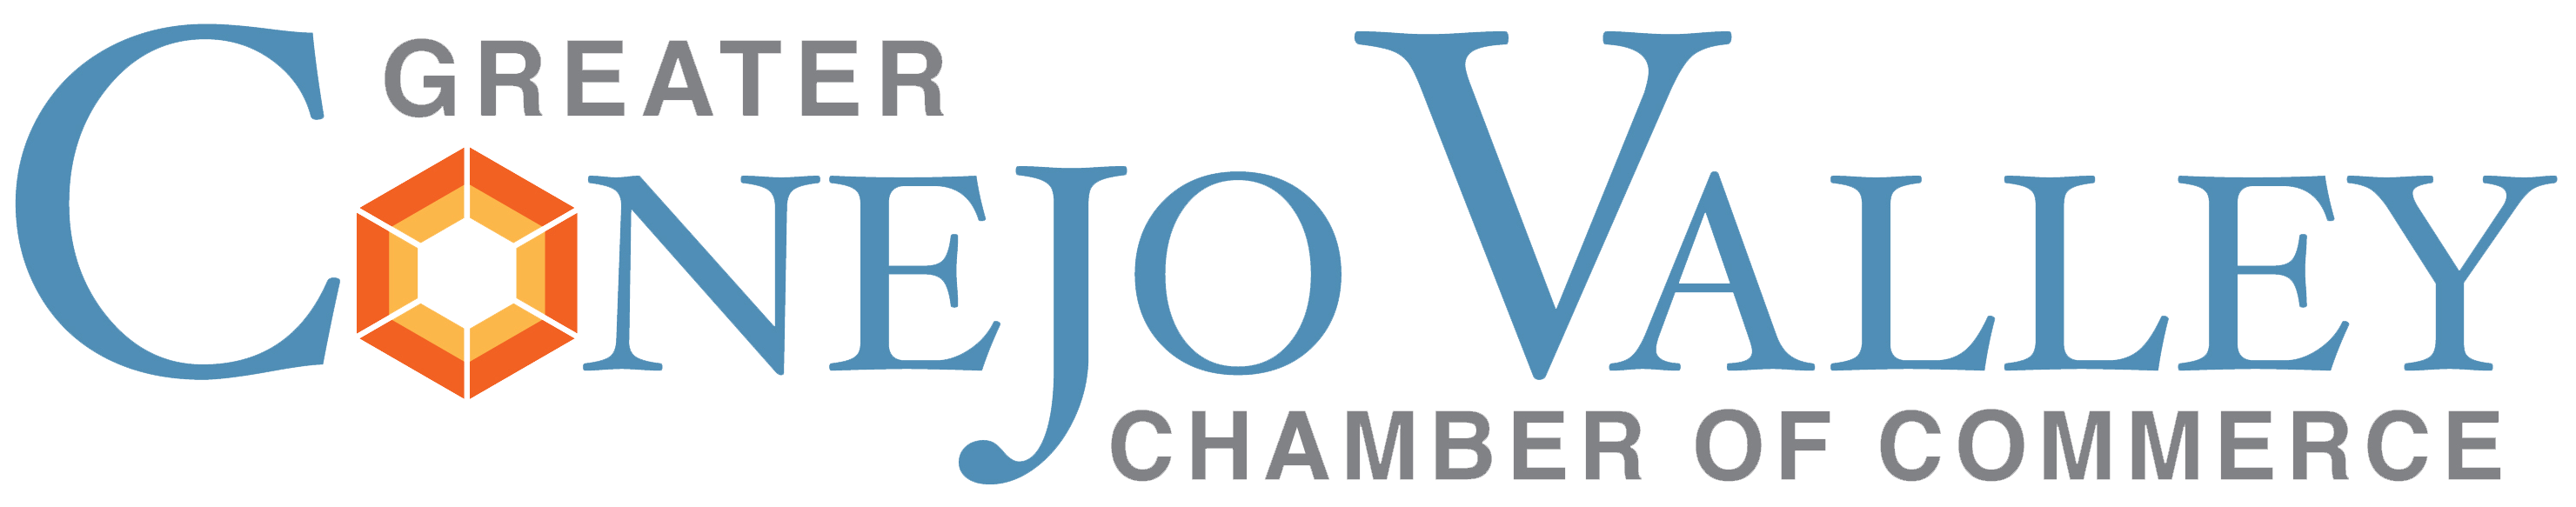 Greater Conejo Chamber of Commerce